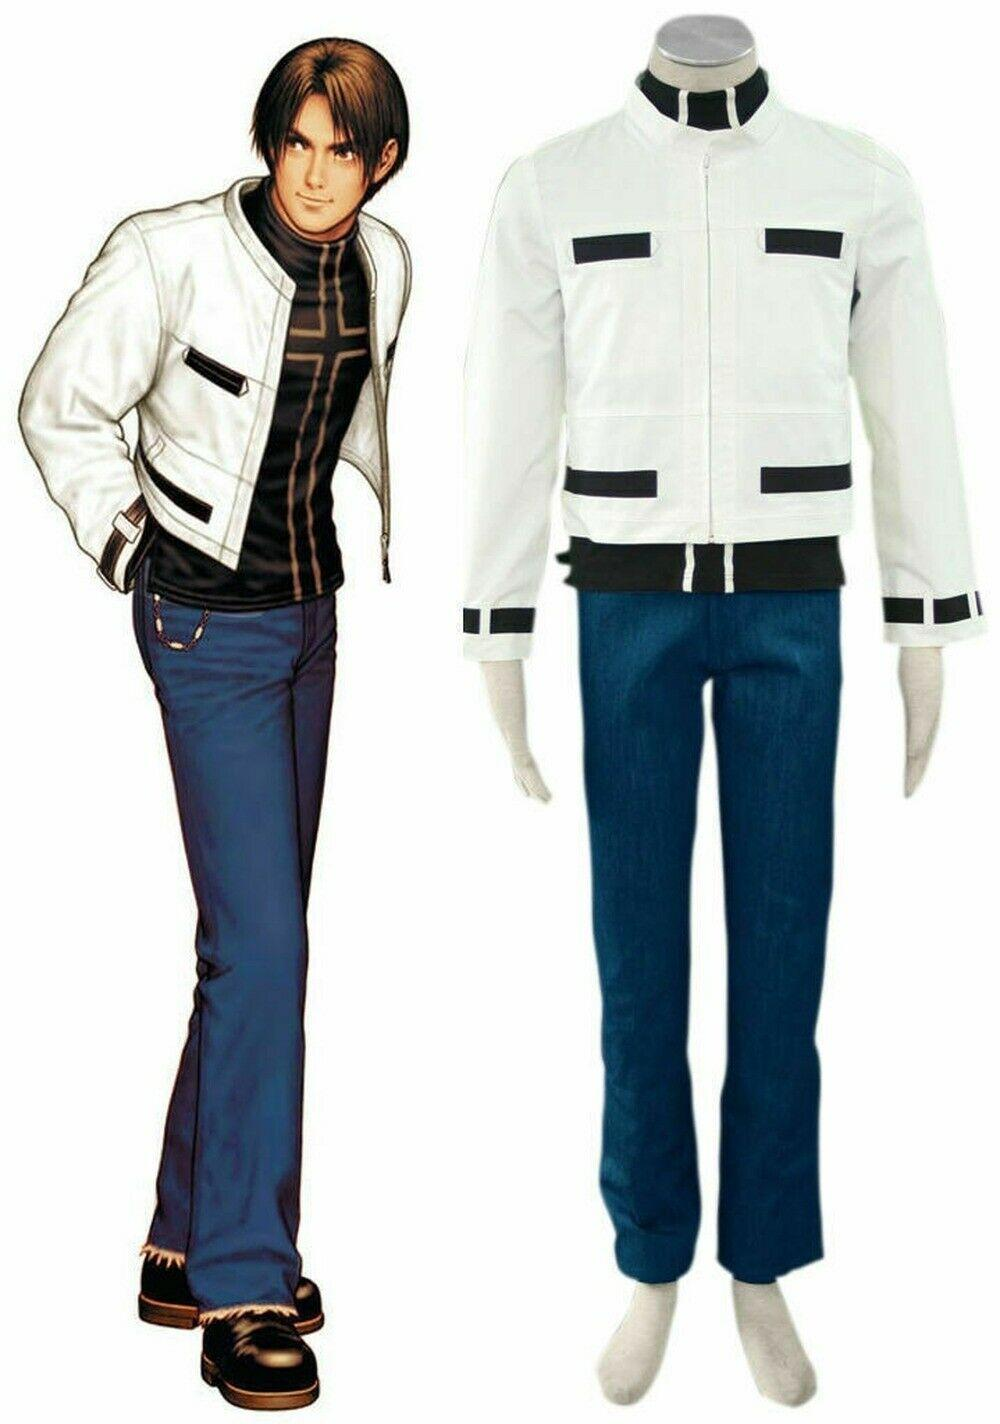 NEW The King of Fighters Kyo Kusanagi Boxer Cosplay Costume Full Set